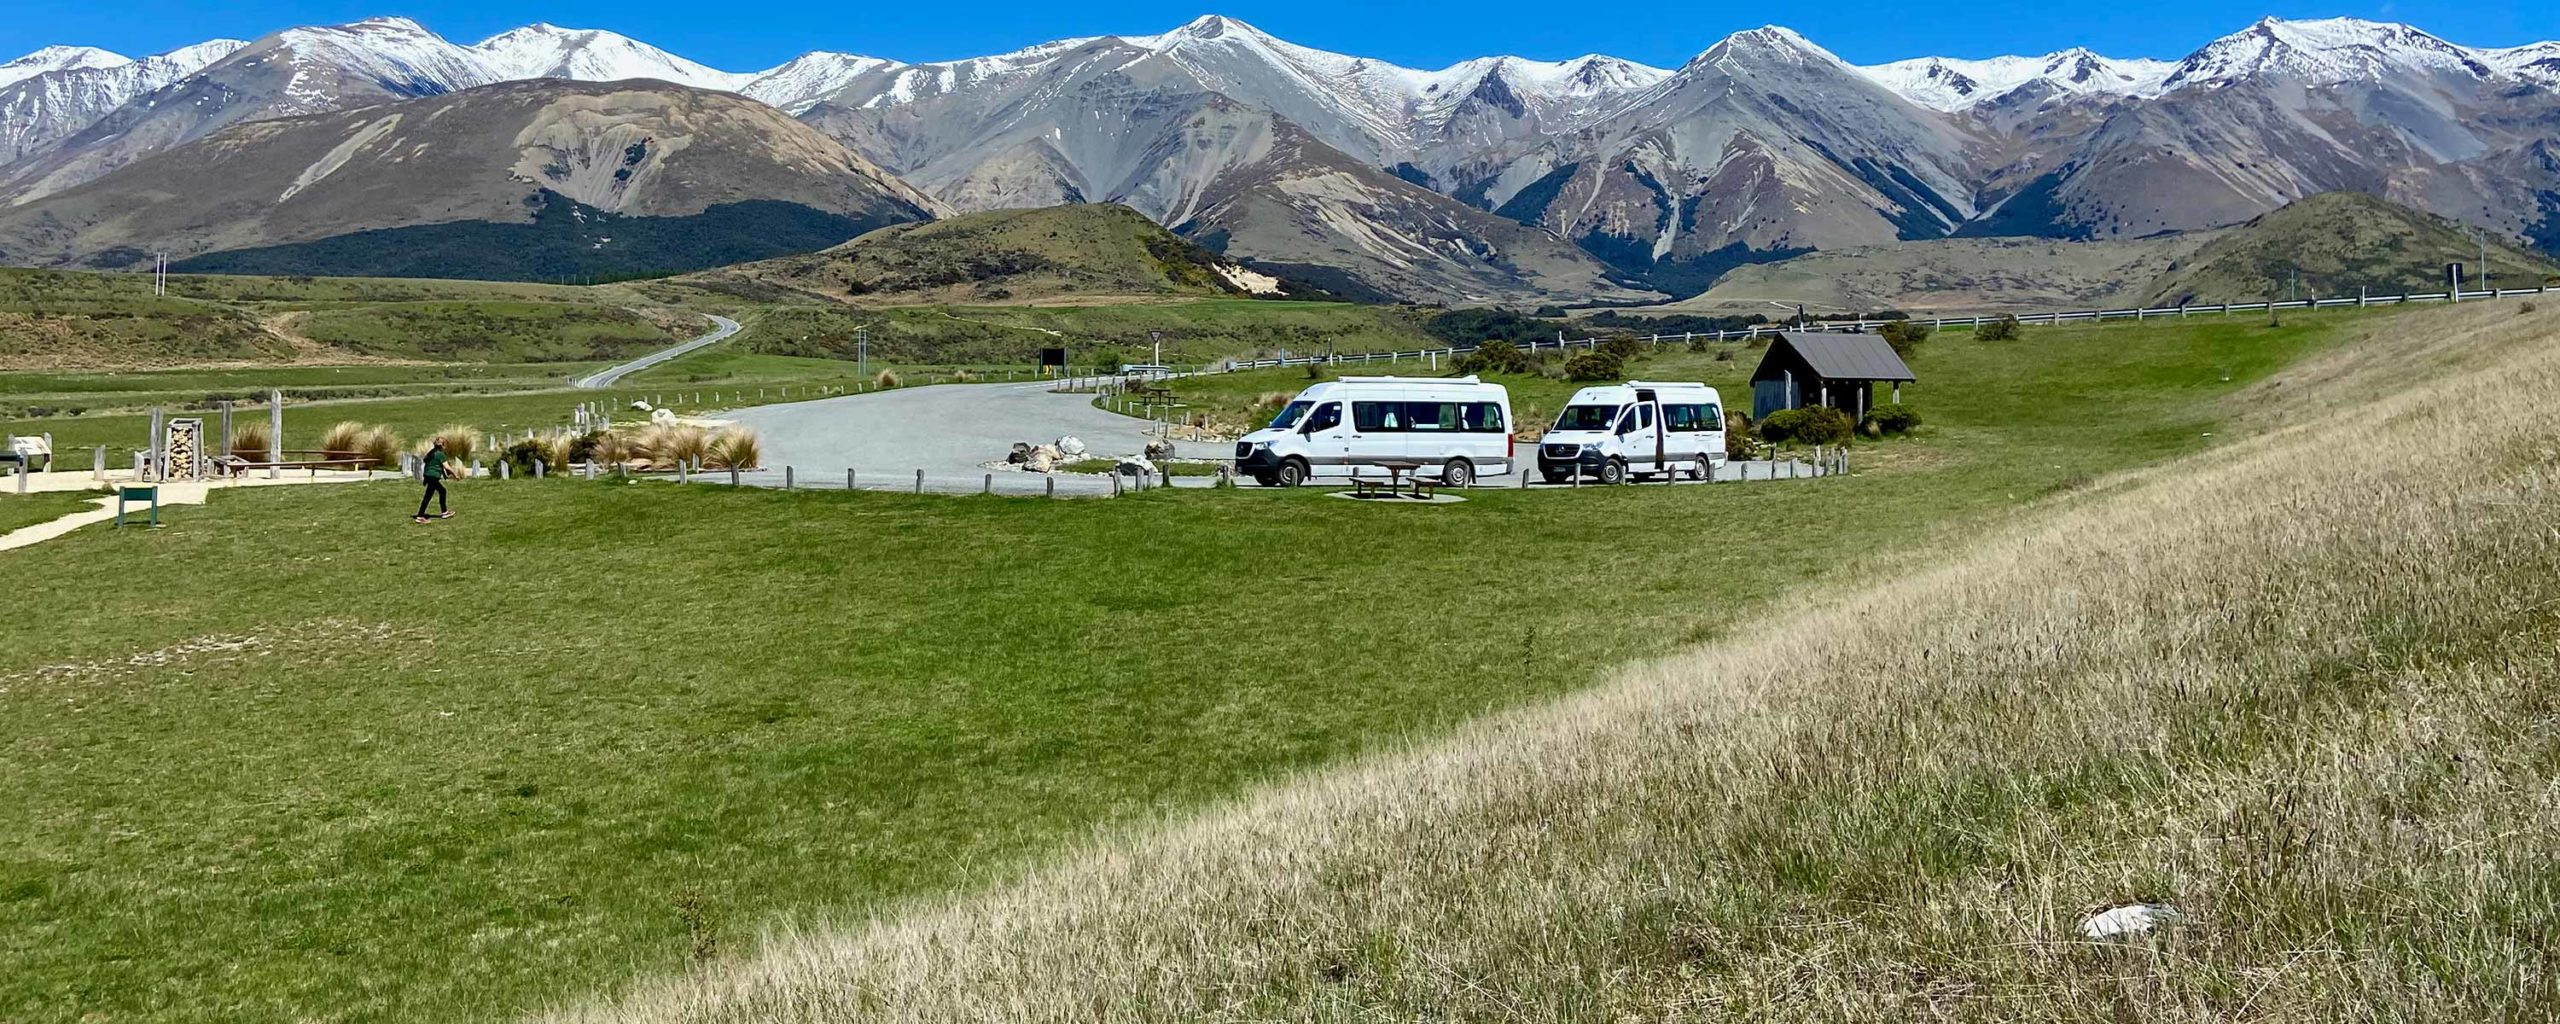 Campervans with high country background